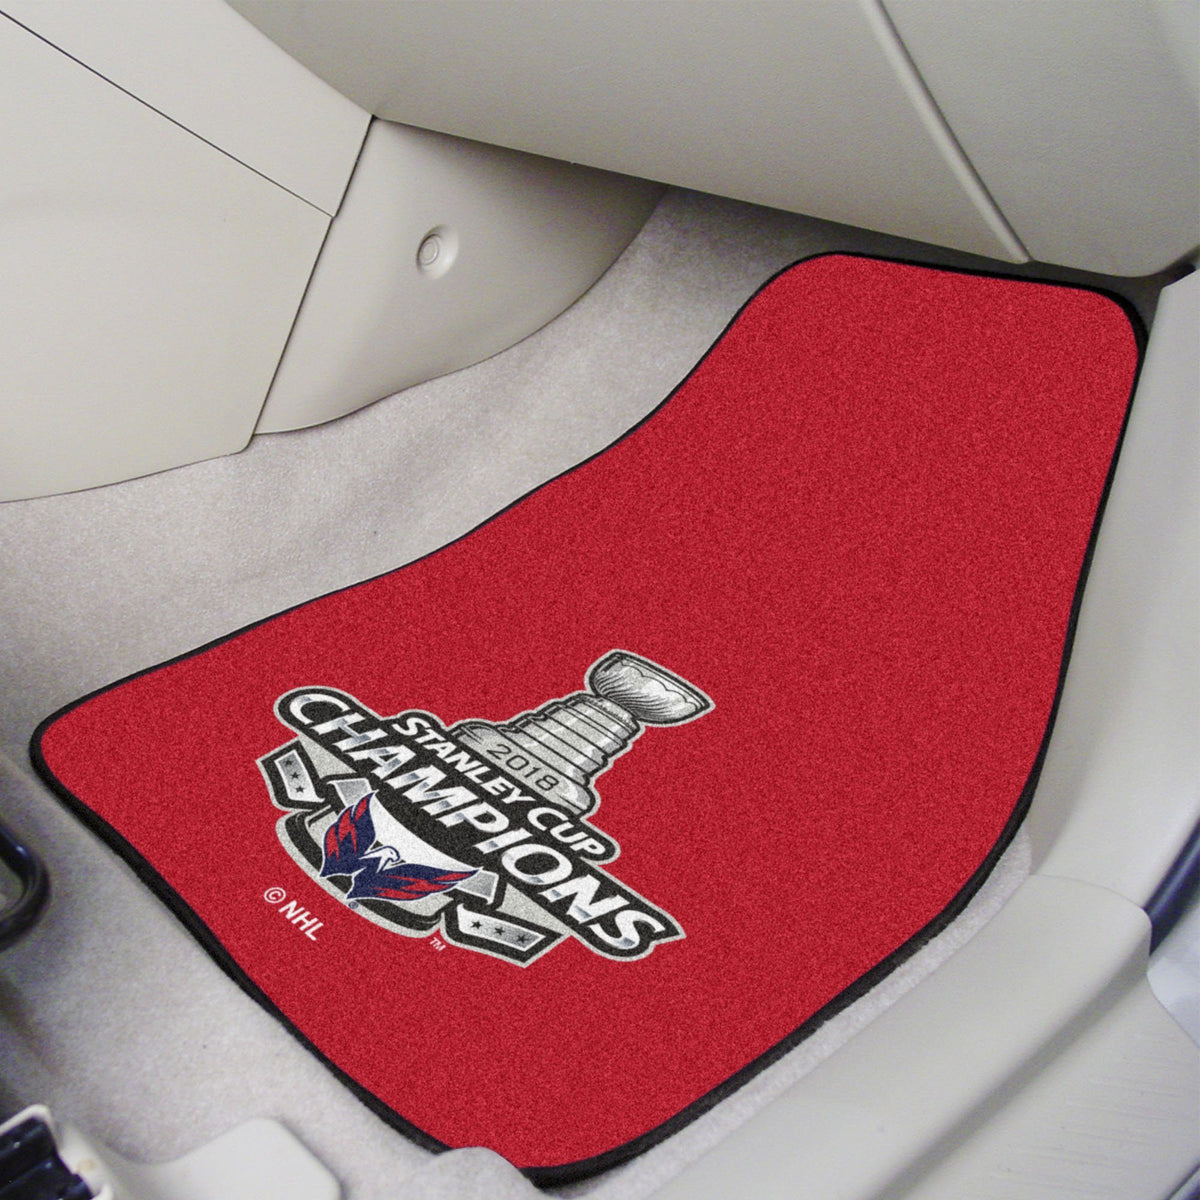 NHL - Carpet Car Mat, 2-Piece Set NHL Mats, Front Car Mats, 2-pc Carpet Car Mat Set, NHL, Auto Fan Mats Washington Capitals 2